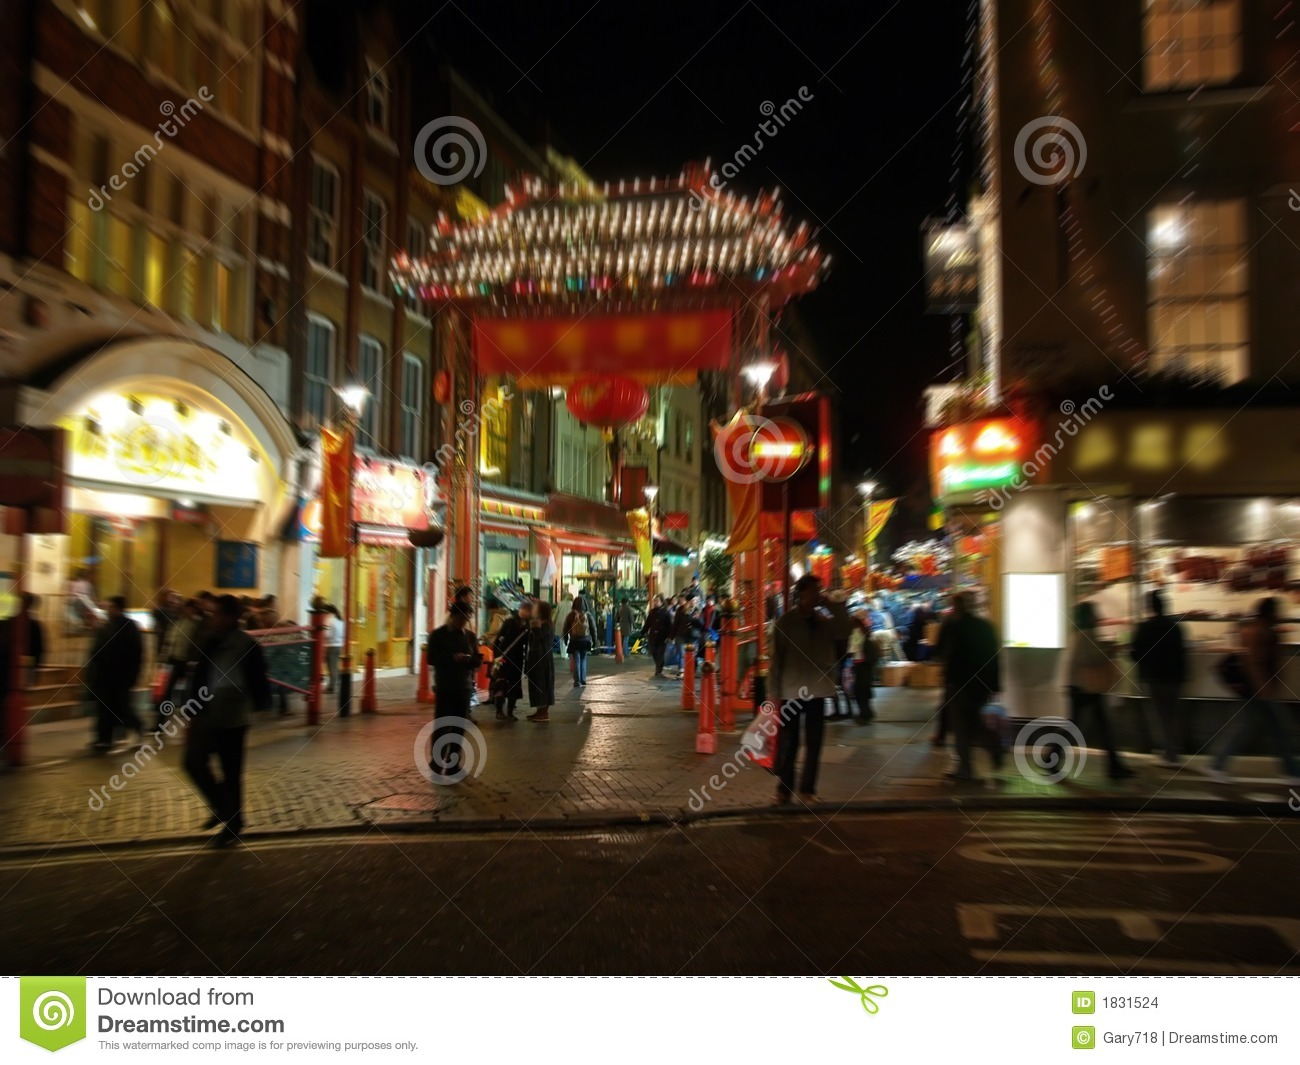 A night view of the Chinatown in London